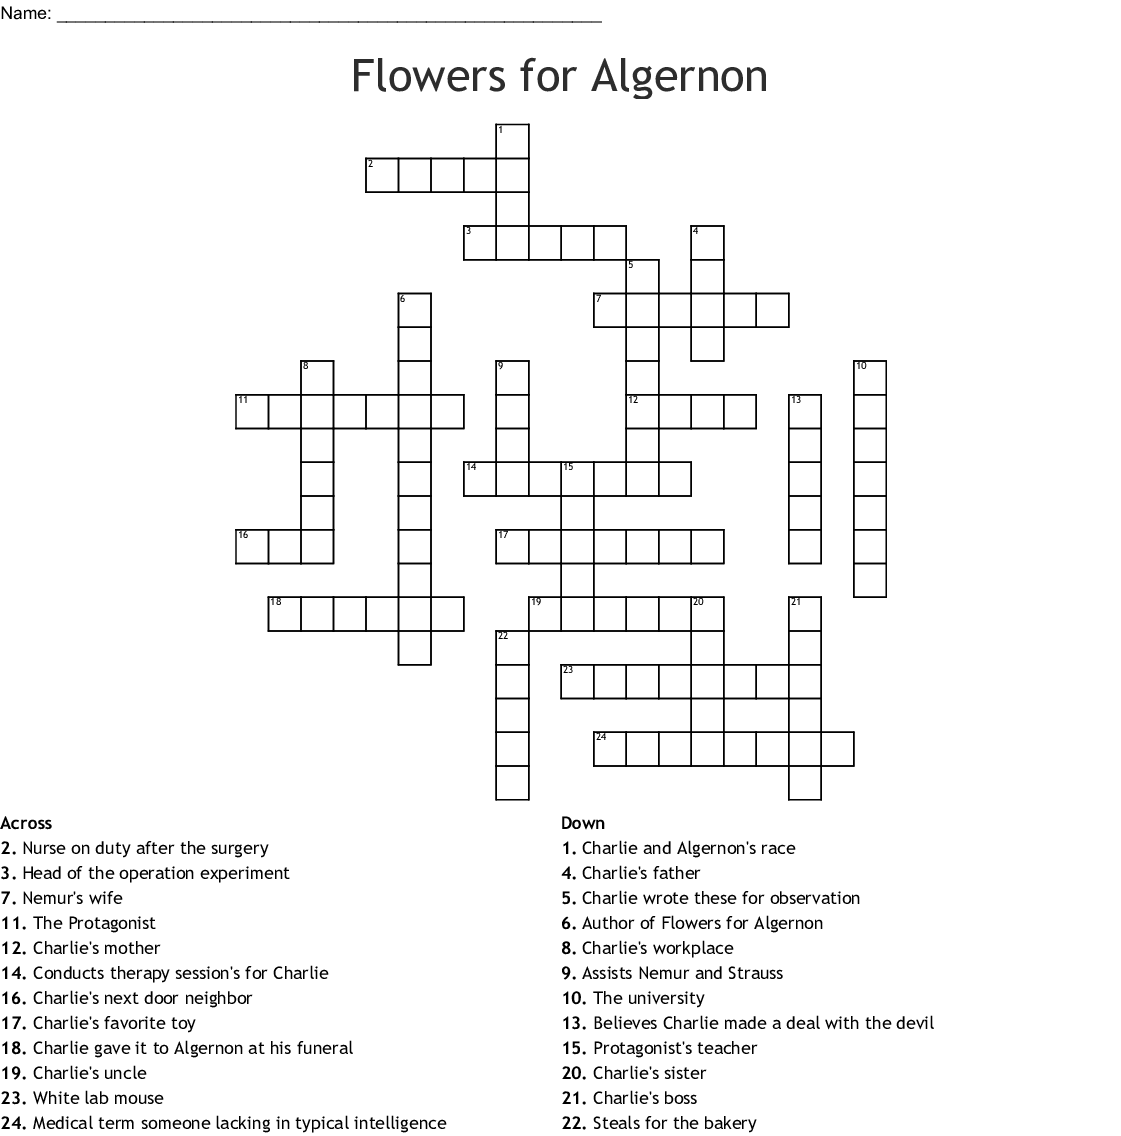 Flowers For Algernon Word Search